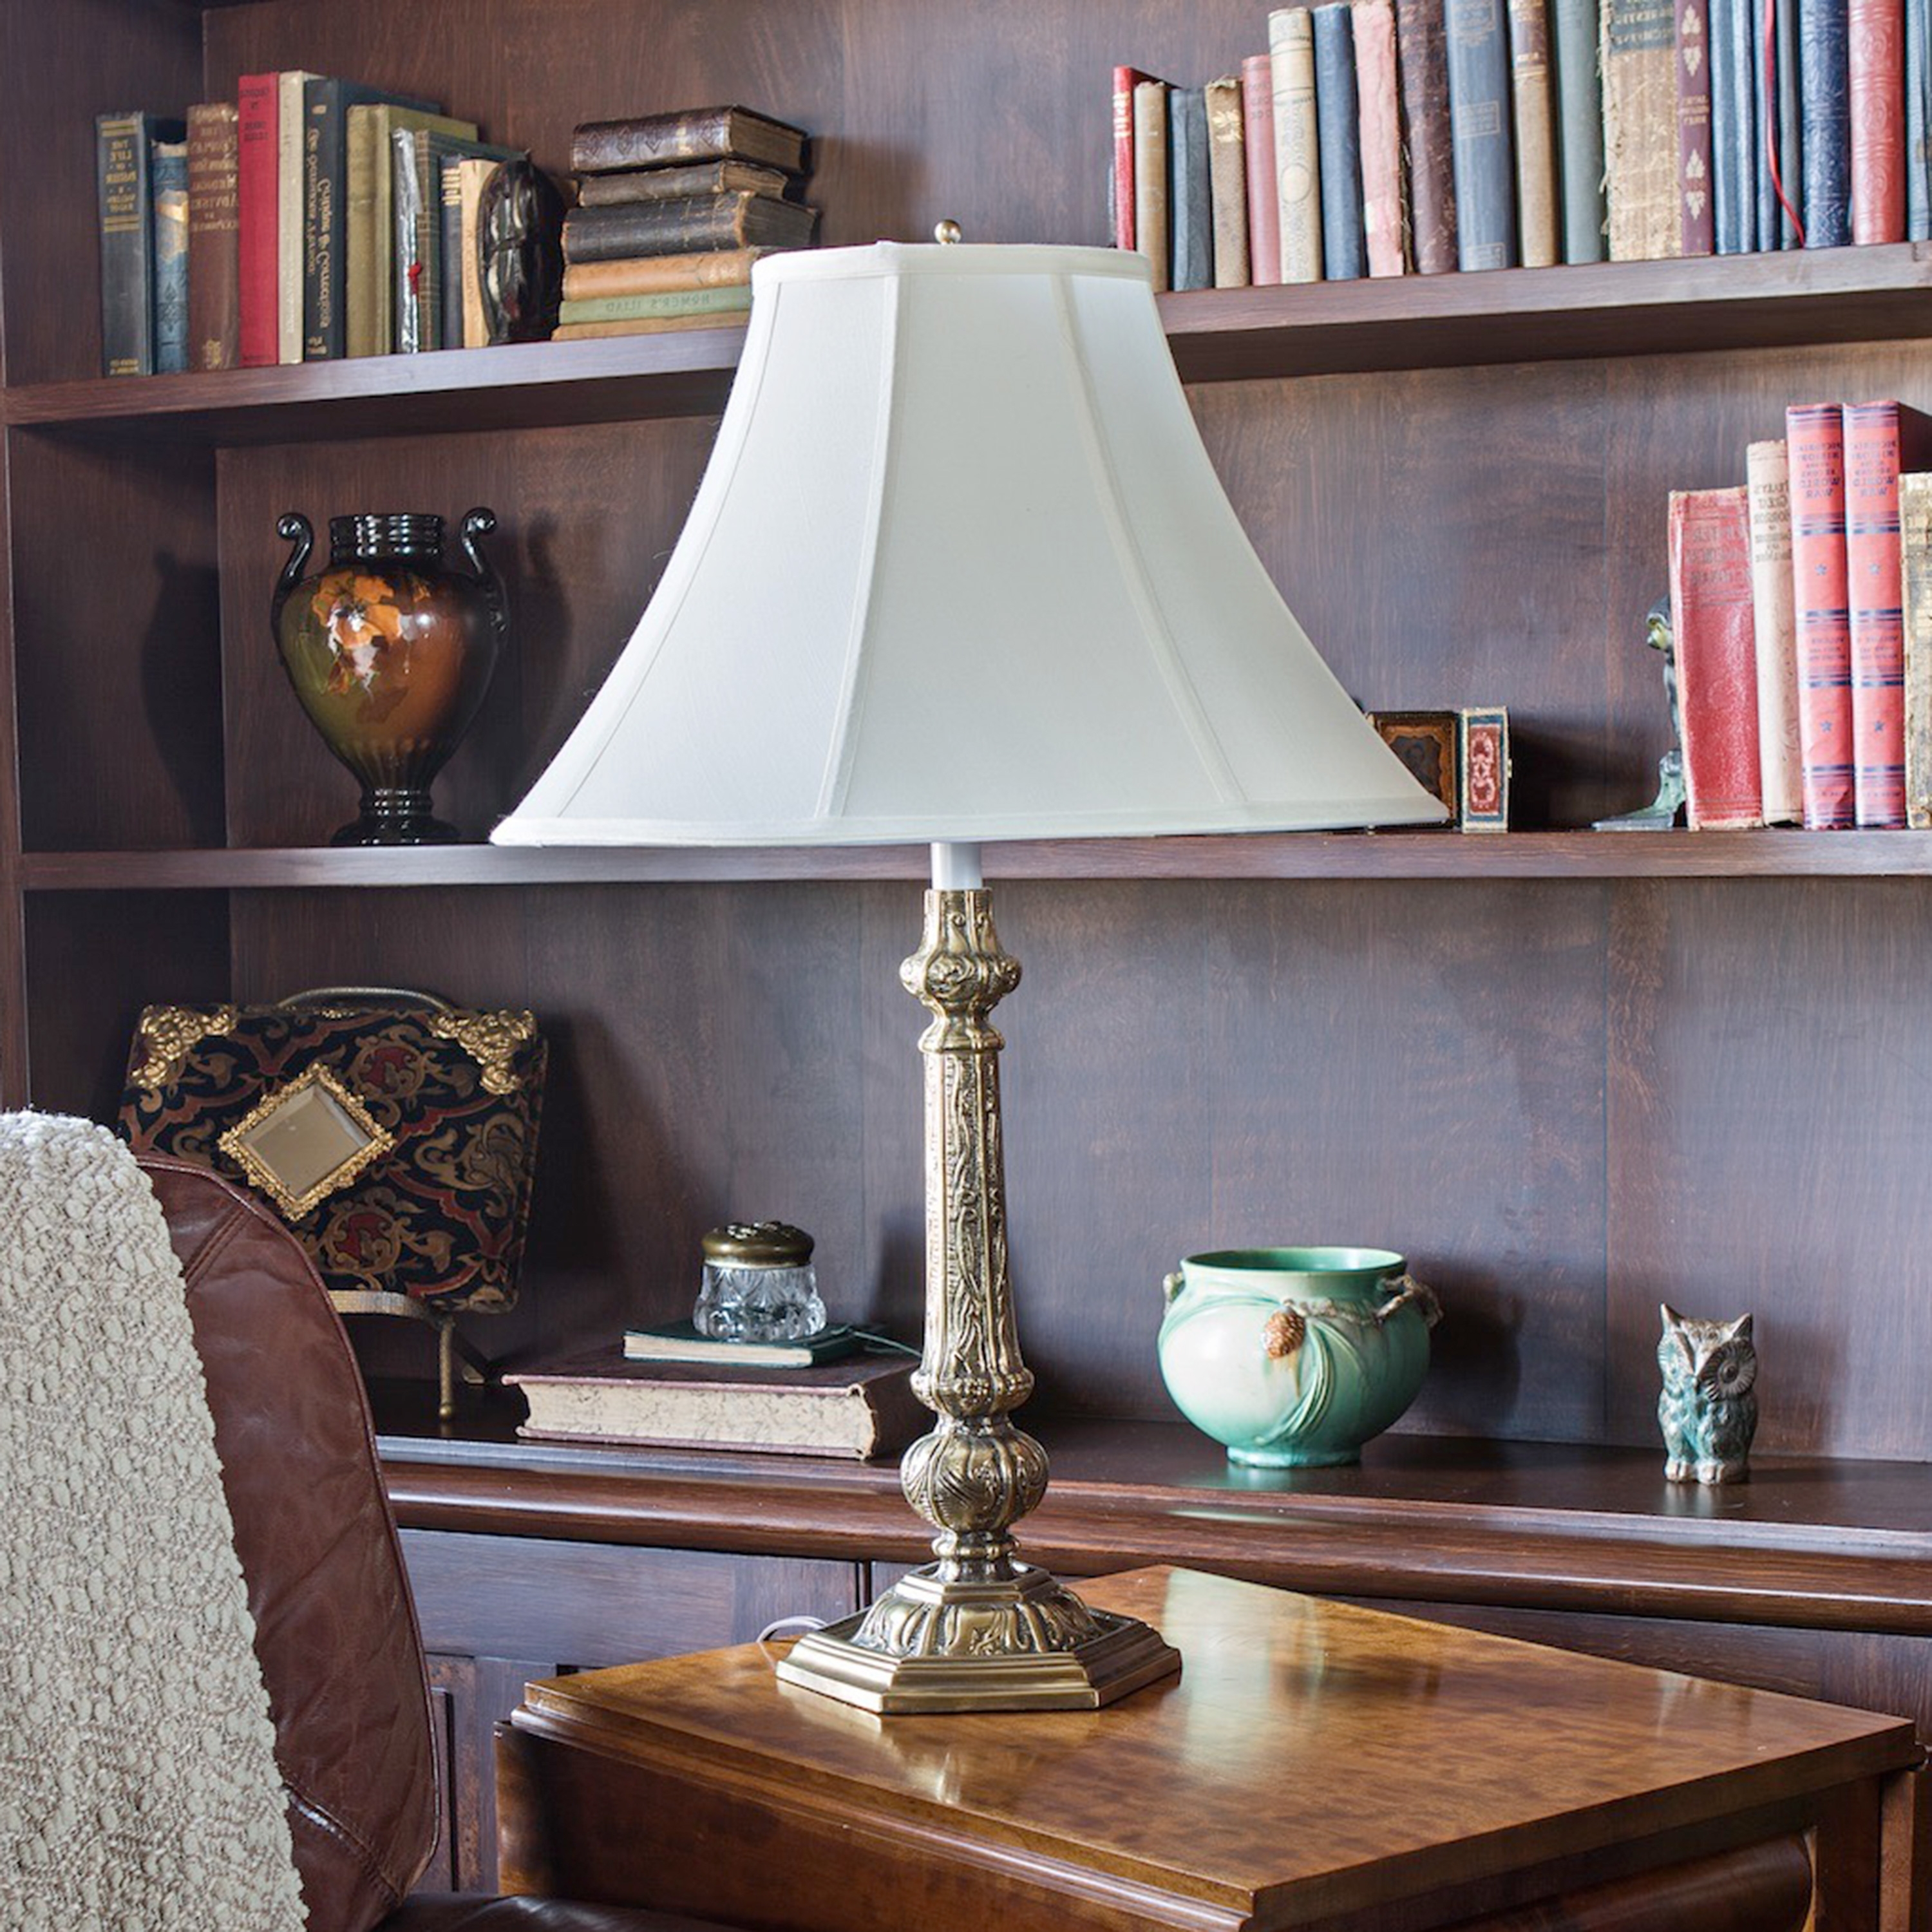 Fashionable 71 Most Ace Table Lamps Touch Battery Operated White Lamp For Living Pertaining To Vintage Living Room Table Lamps (View 5 of 15)